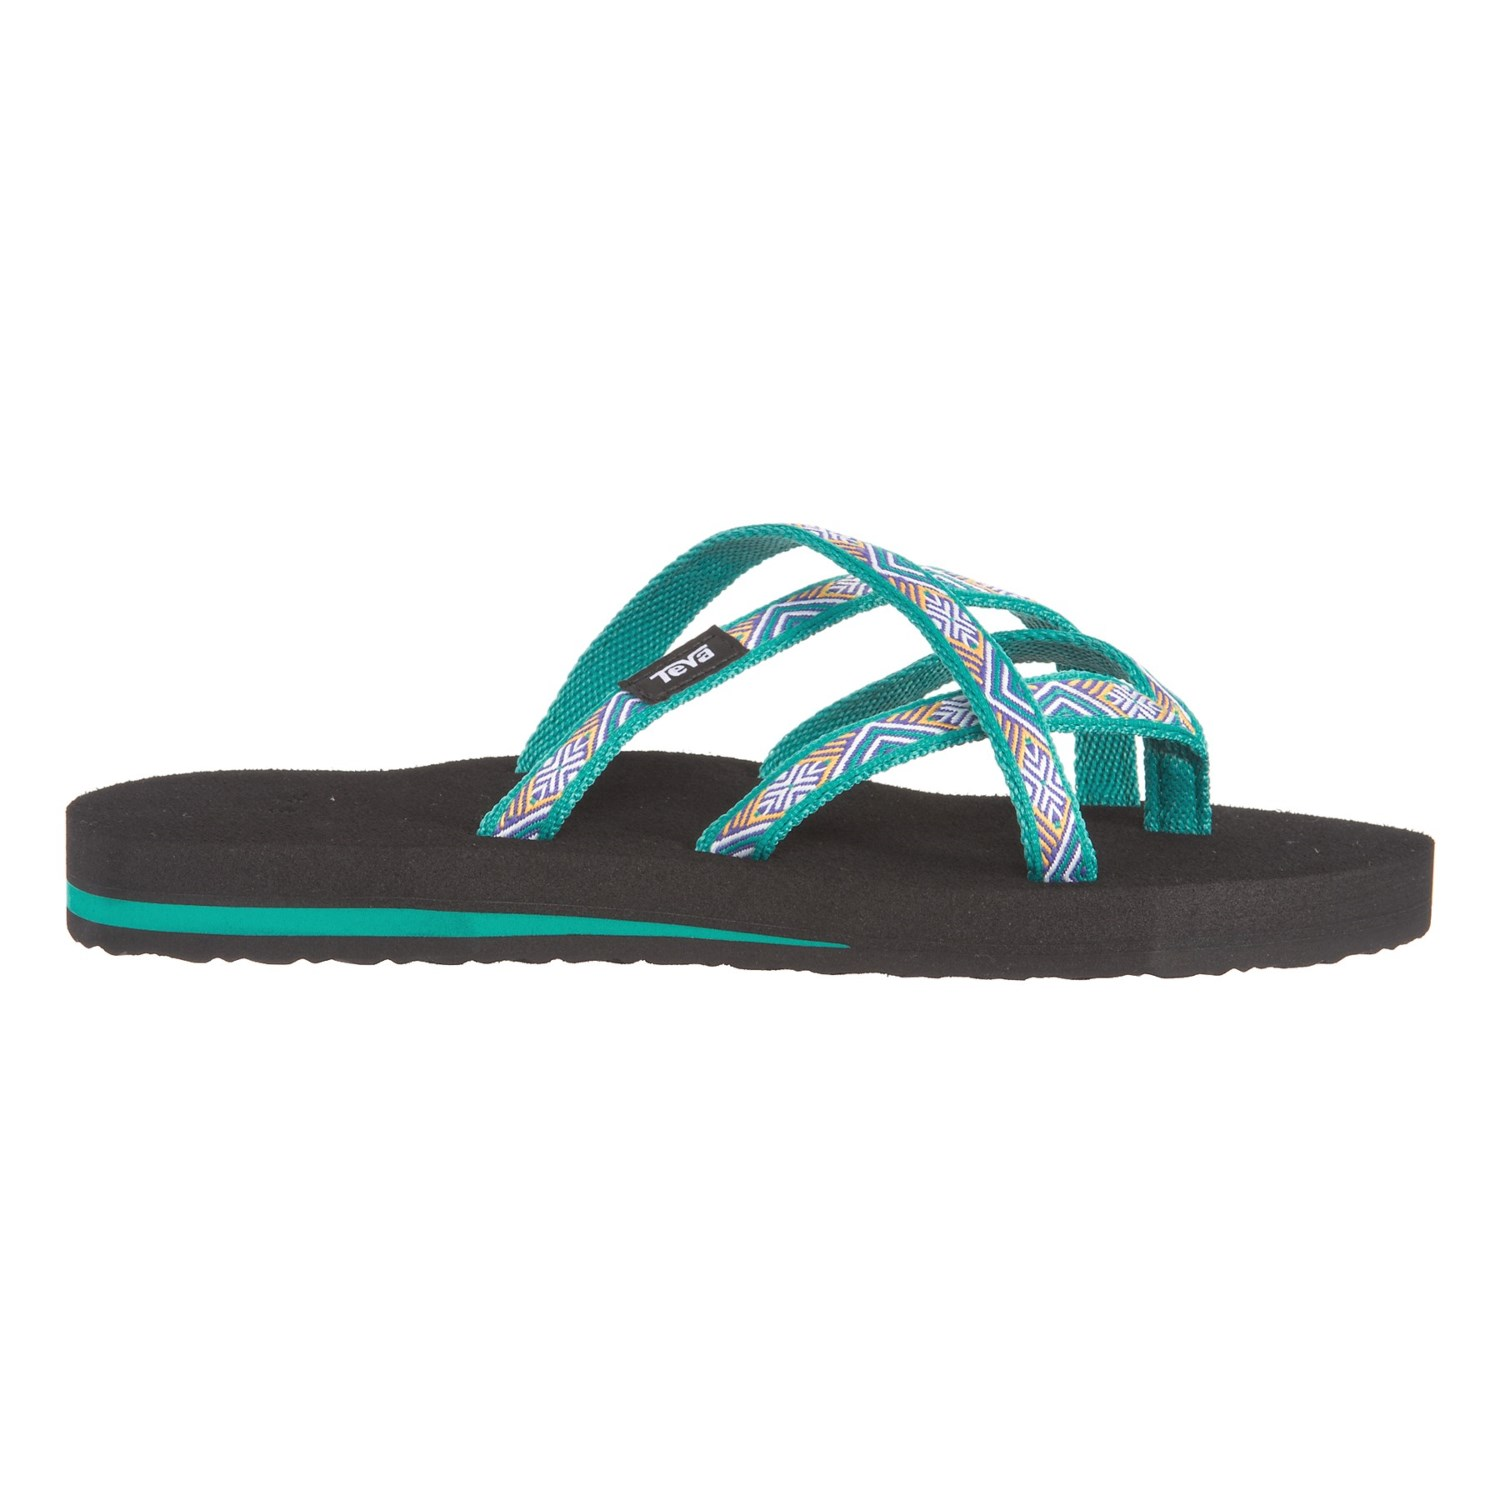 4965a7cfe605 Teva Olowahu Flip-Flops (For Women) - Save 35%